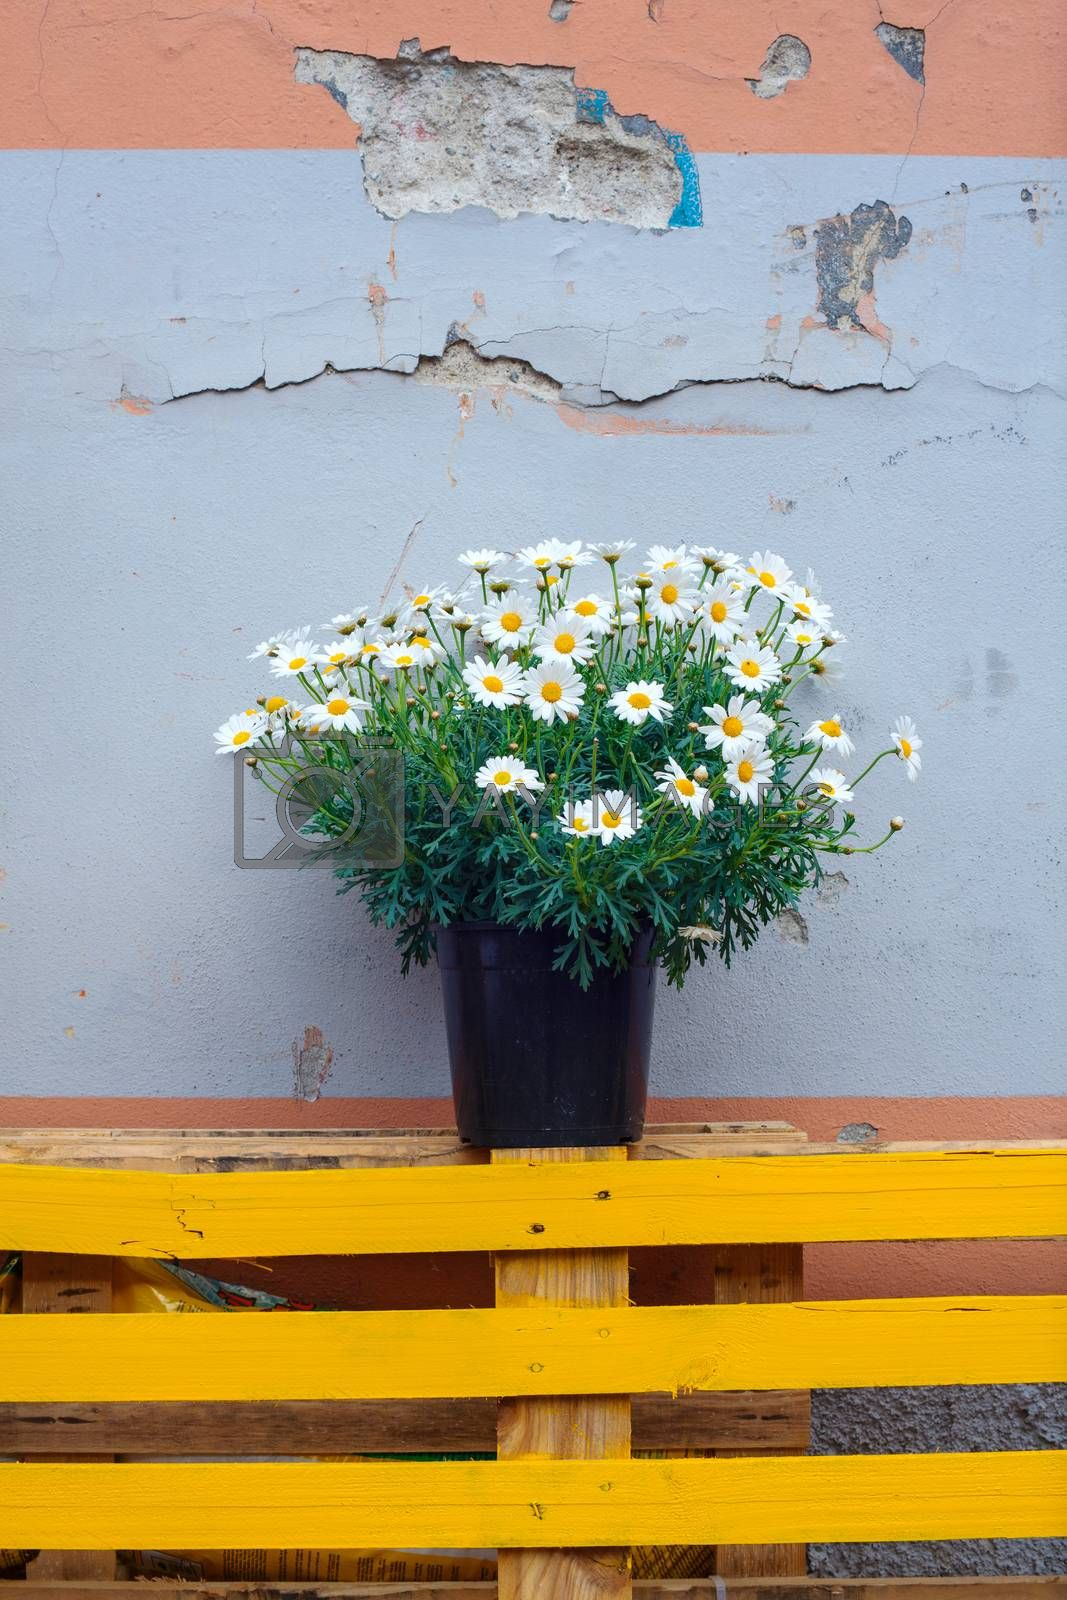 View of Pot of daisies on dirty wall background